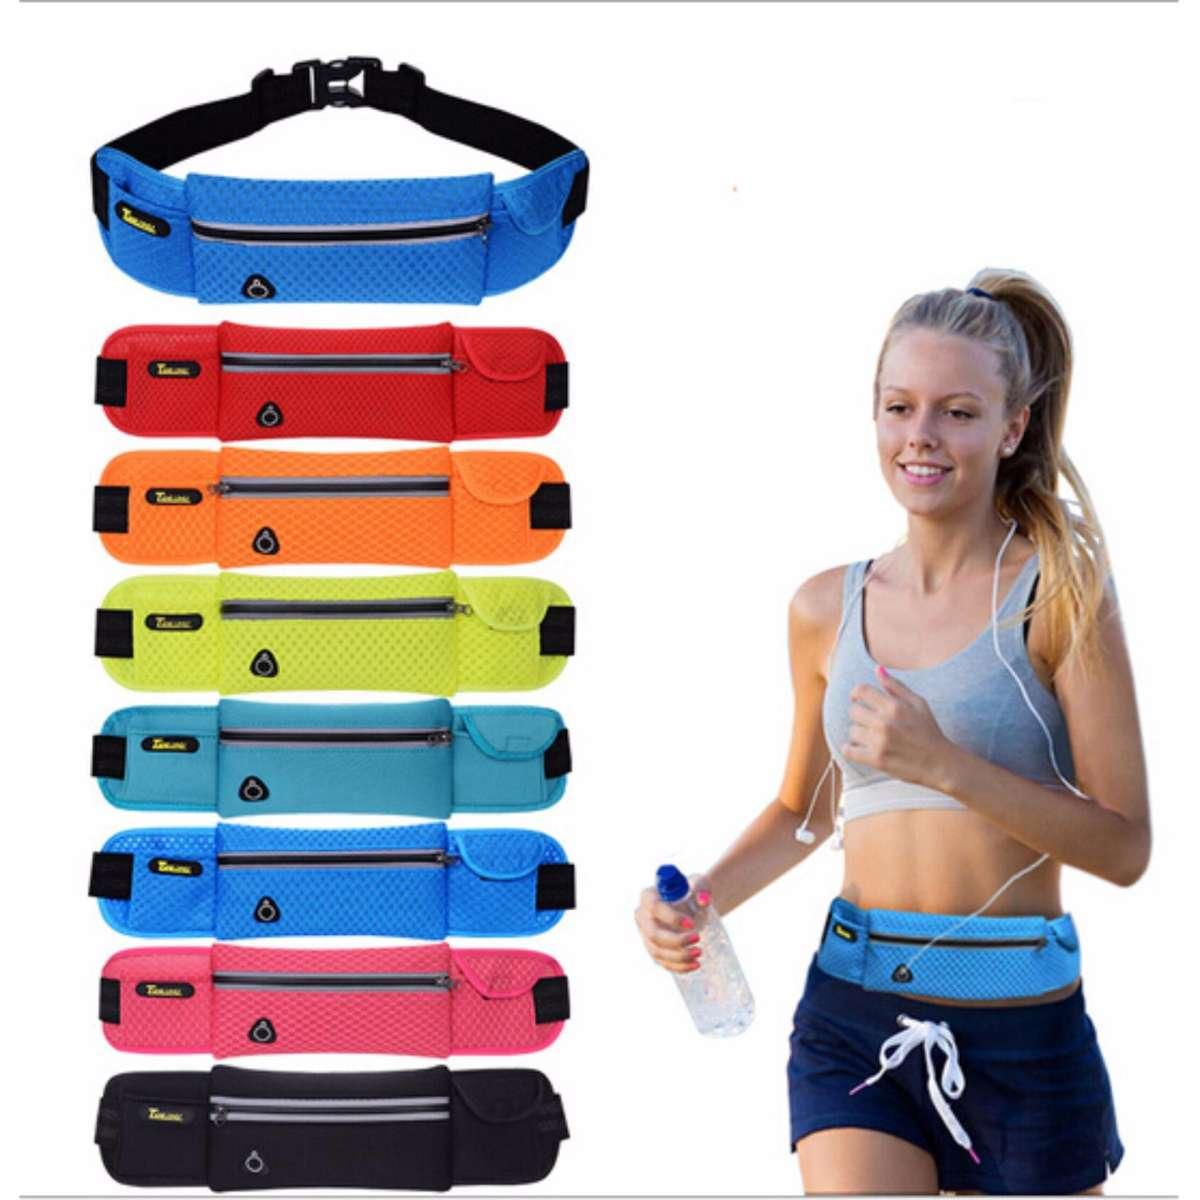 Tas Pinggang Olahraga Lari / Jogging / Gym / Fitness / Sepeda Jaring - Sports Bag Running / Bike - Waterproof Sport Belt Running - Babamu By Babamu.